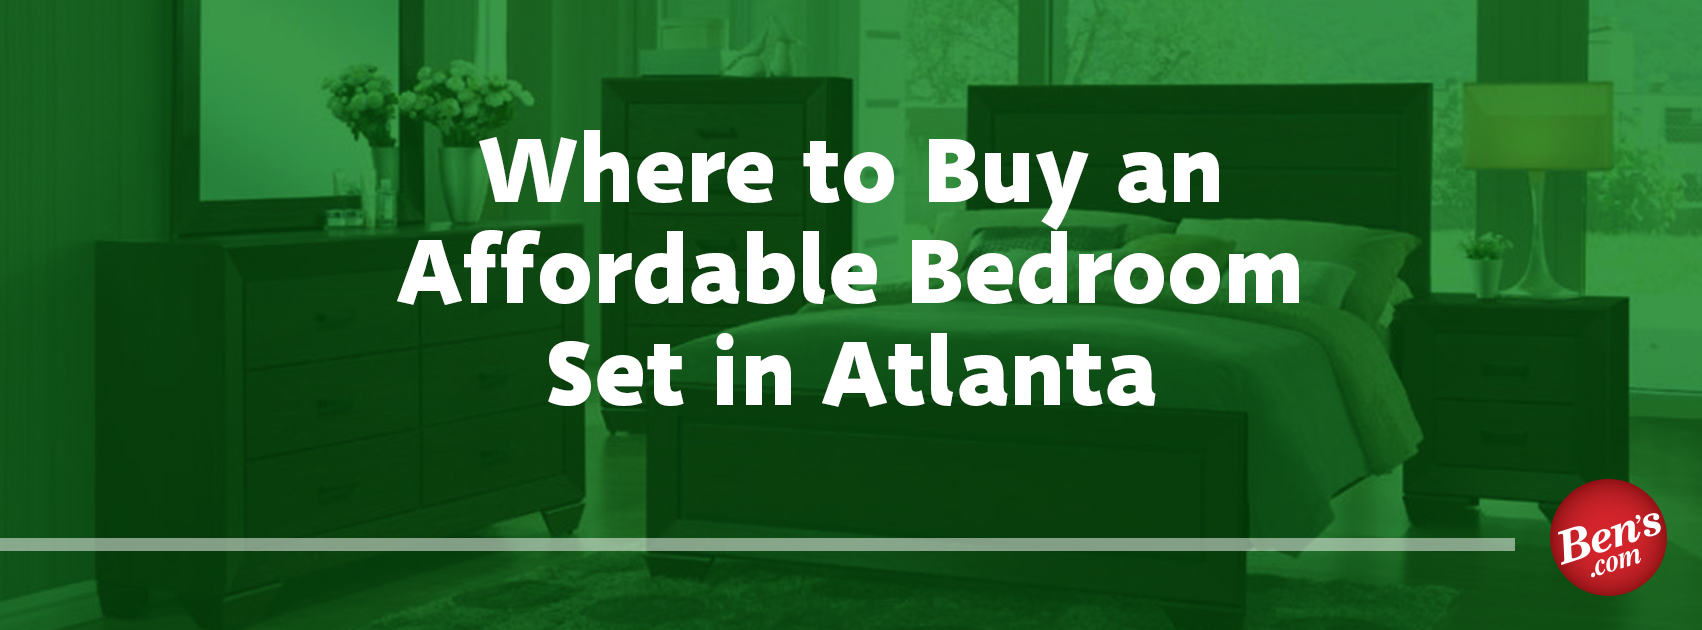 Where To Buy An Affordable Bedroom Set In Atlanta Bens - Places To Buy Bedroom Sets